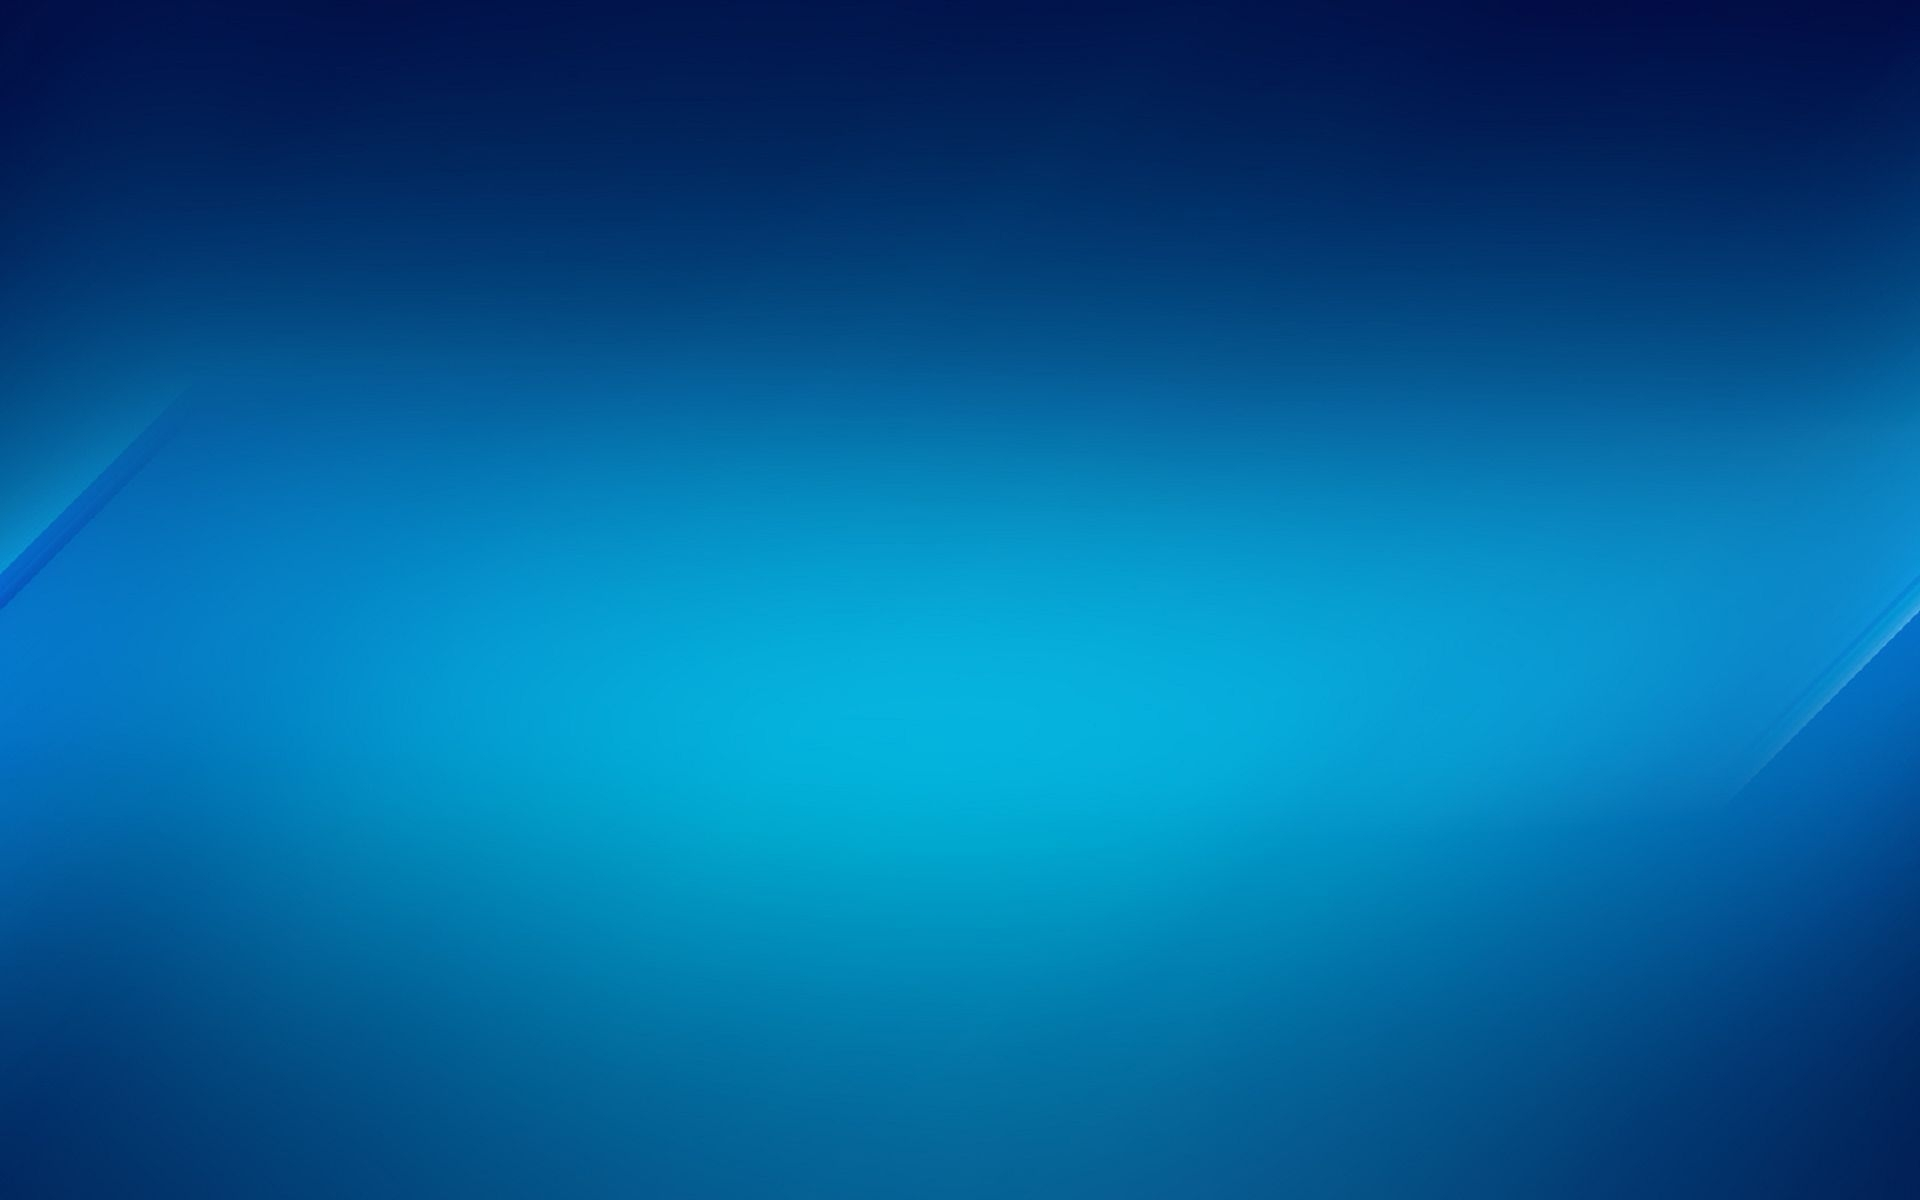 plain blue background - photo #27